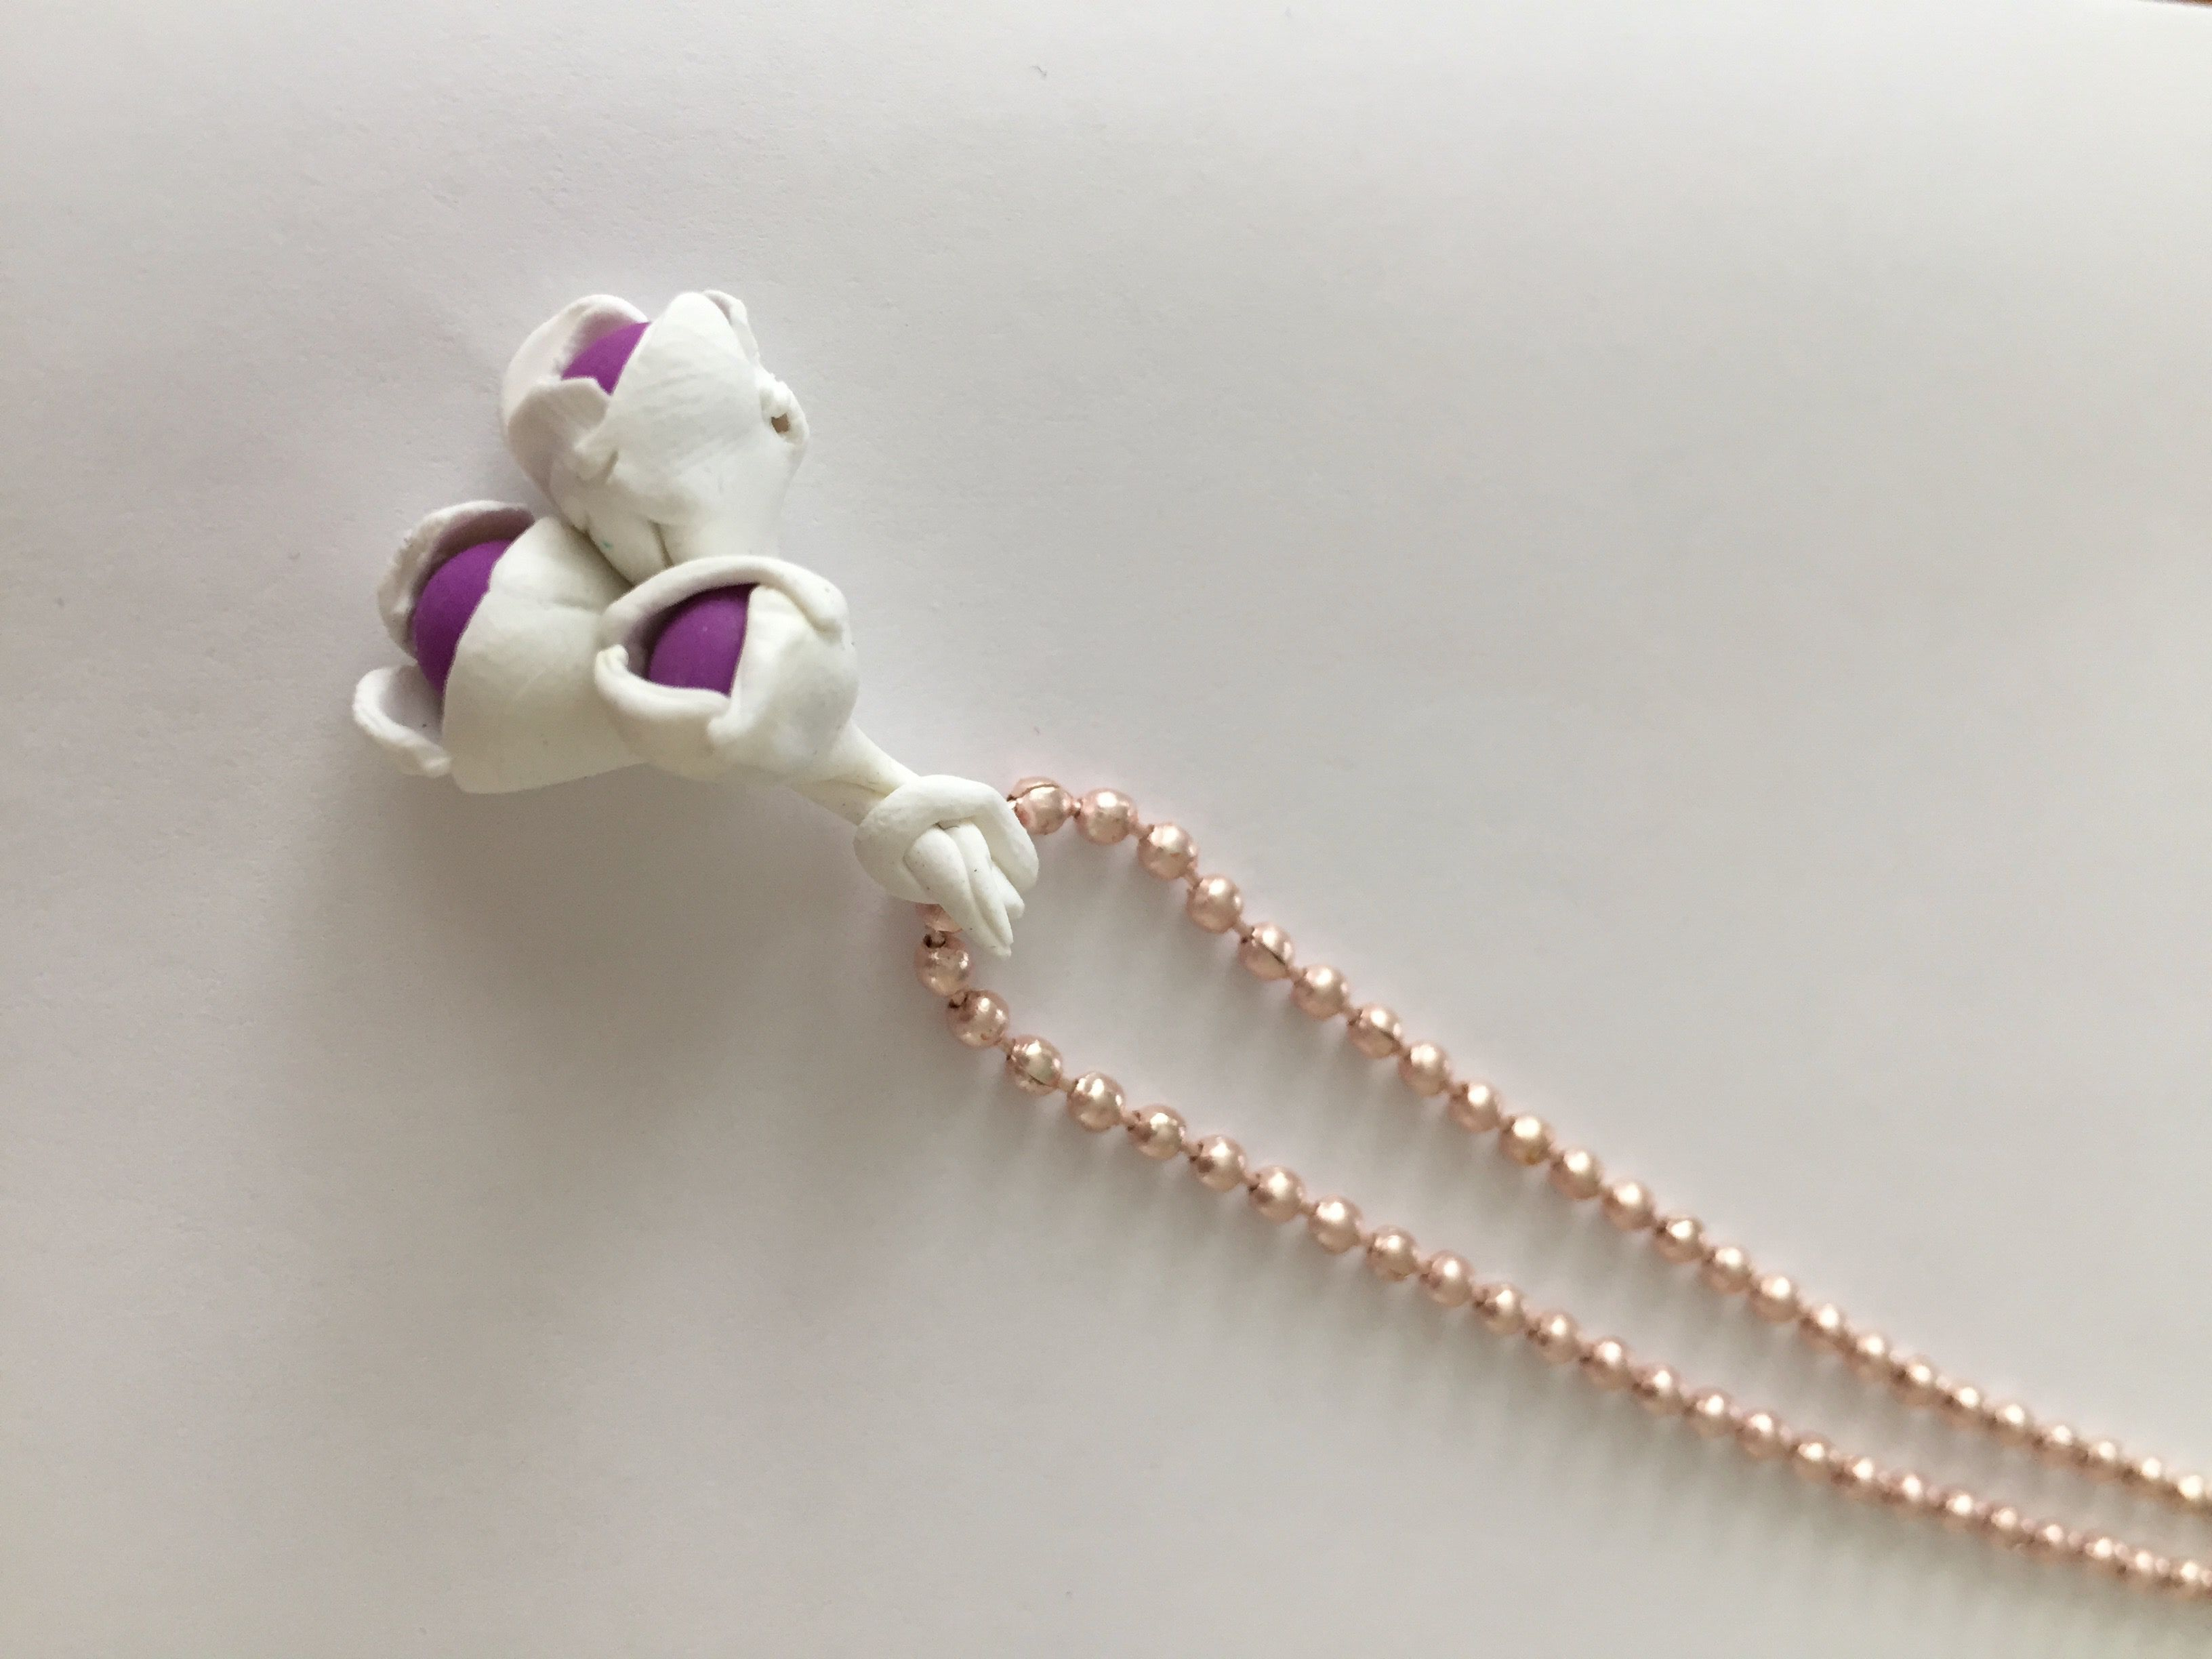 plated white hand bouquet gold polymer necklace beads clay rose sculpted